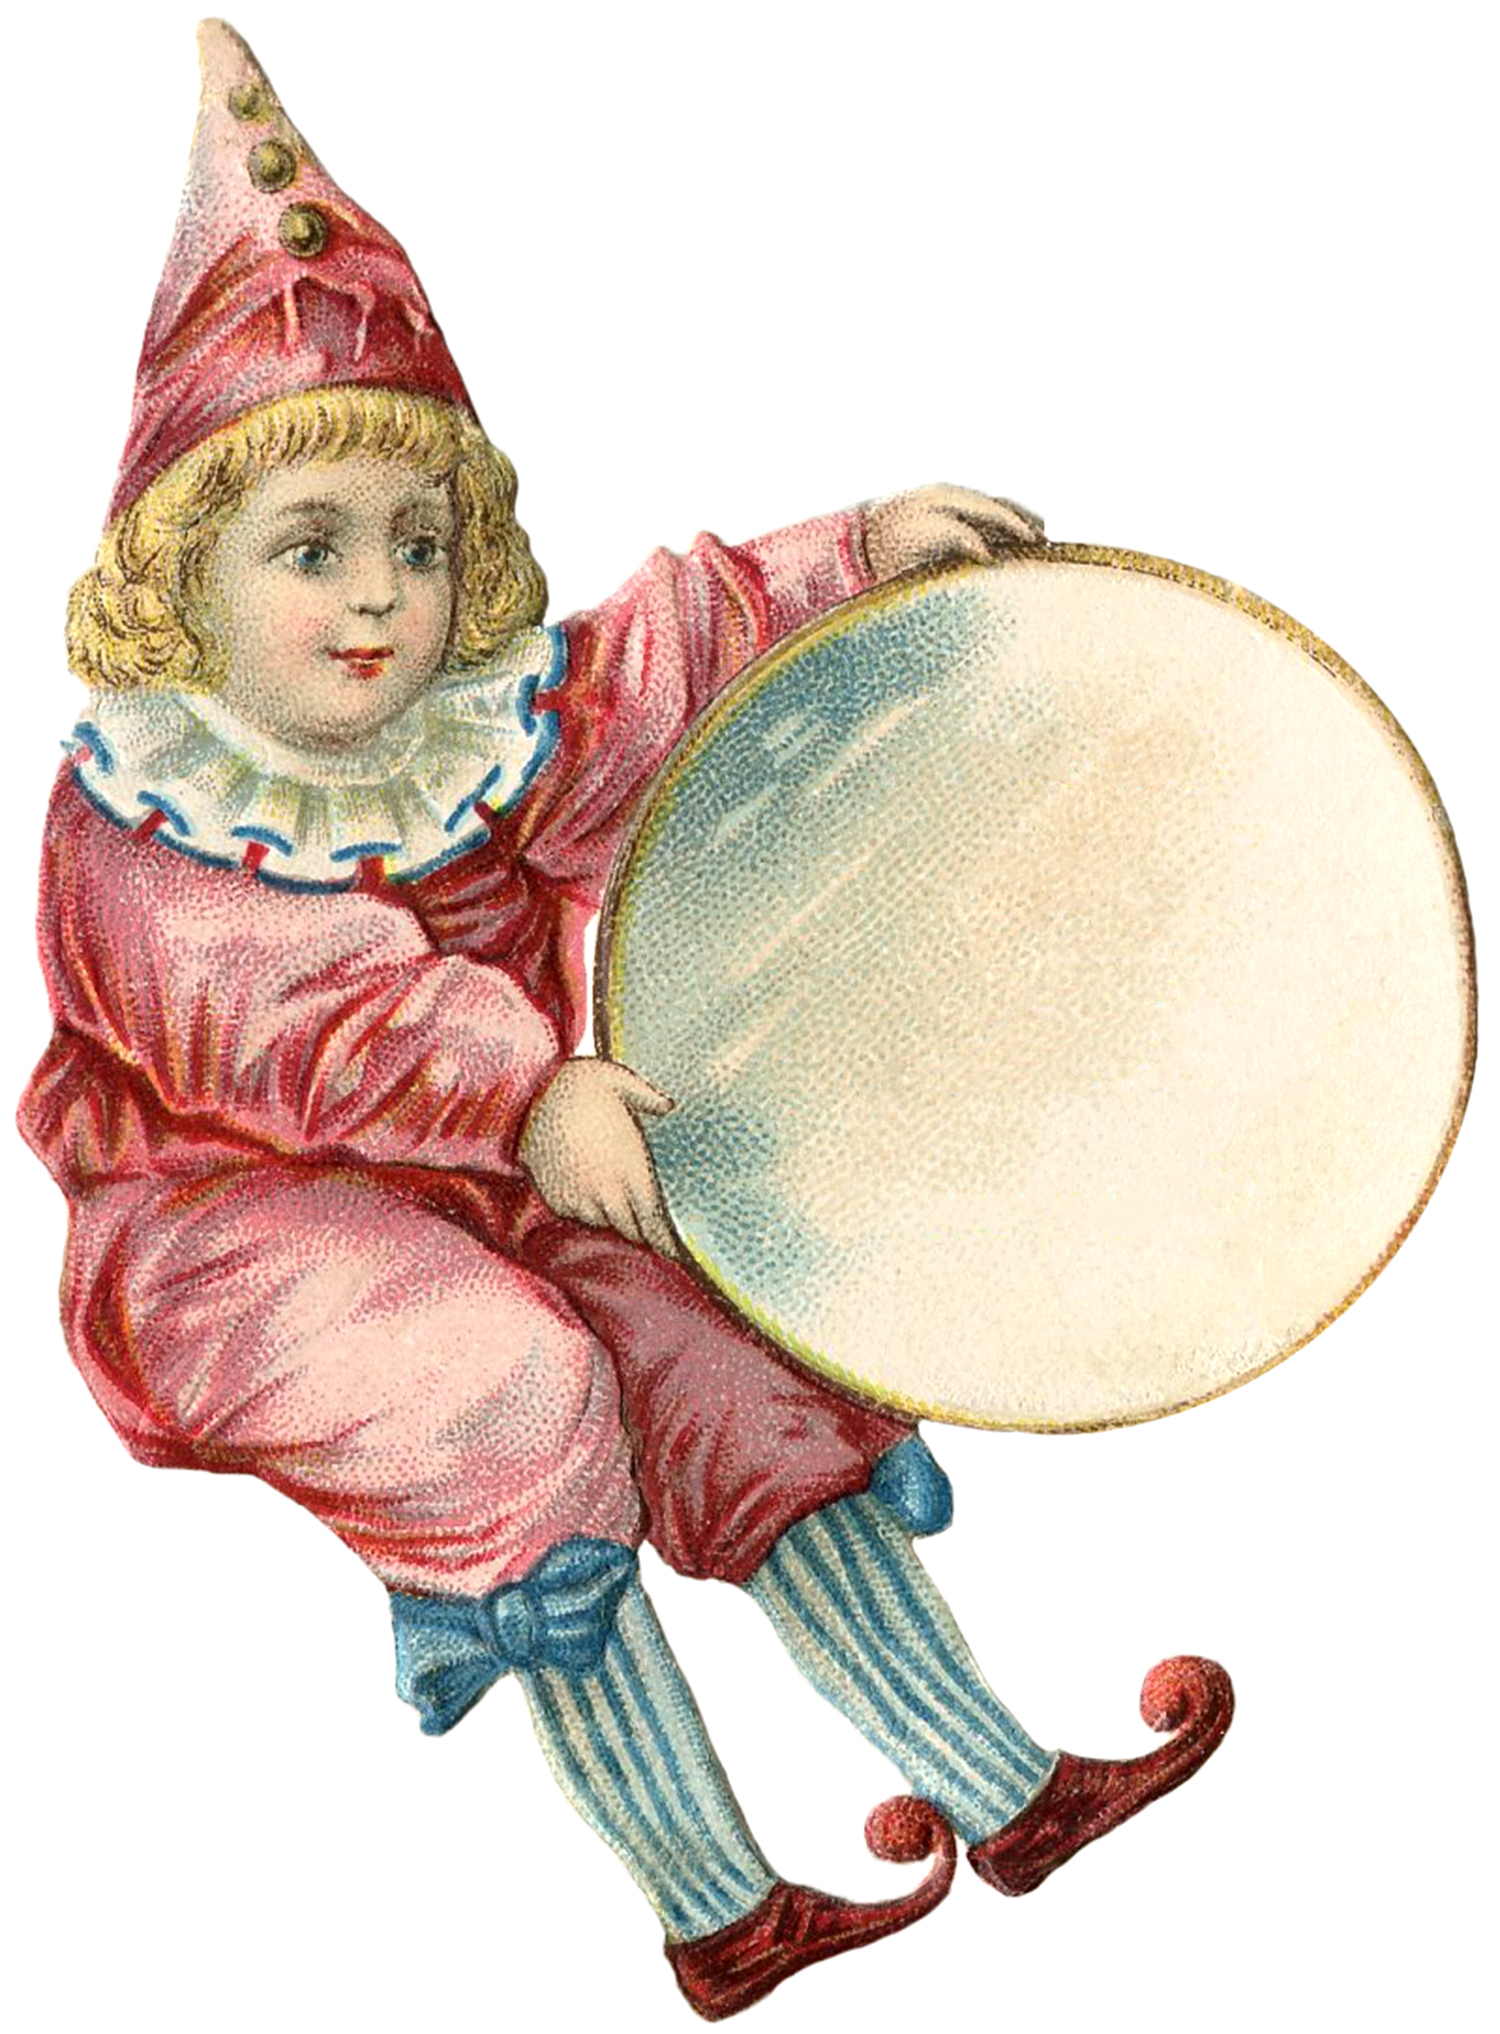 Vintage Circus Clown Clipart Antique Clown Girl Image